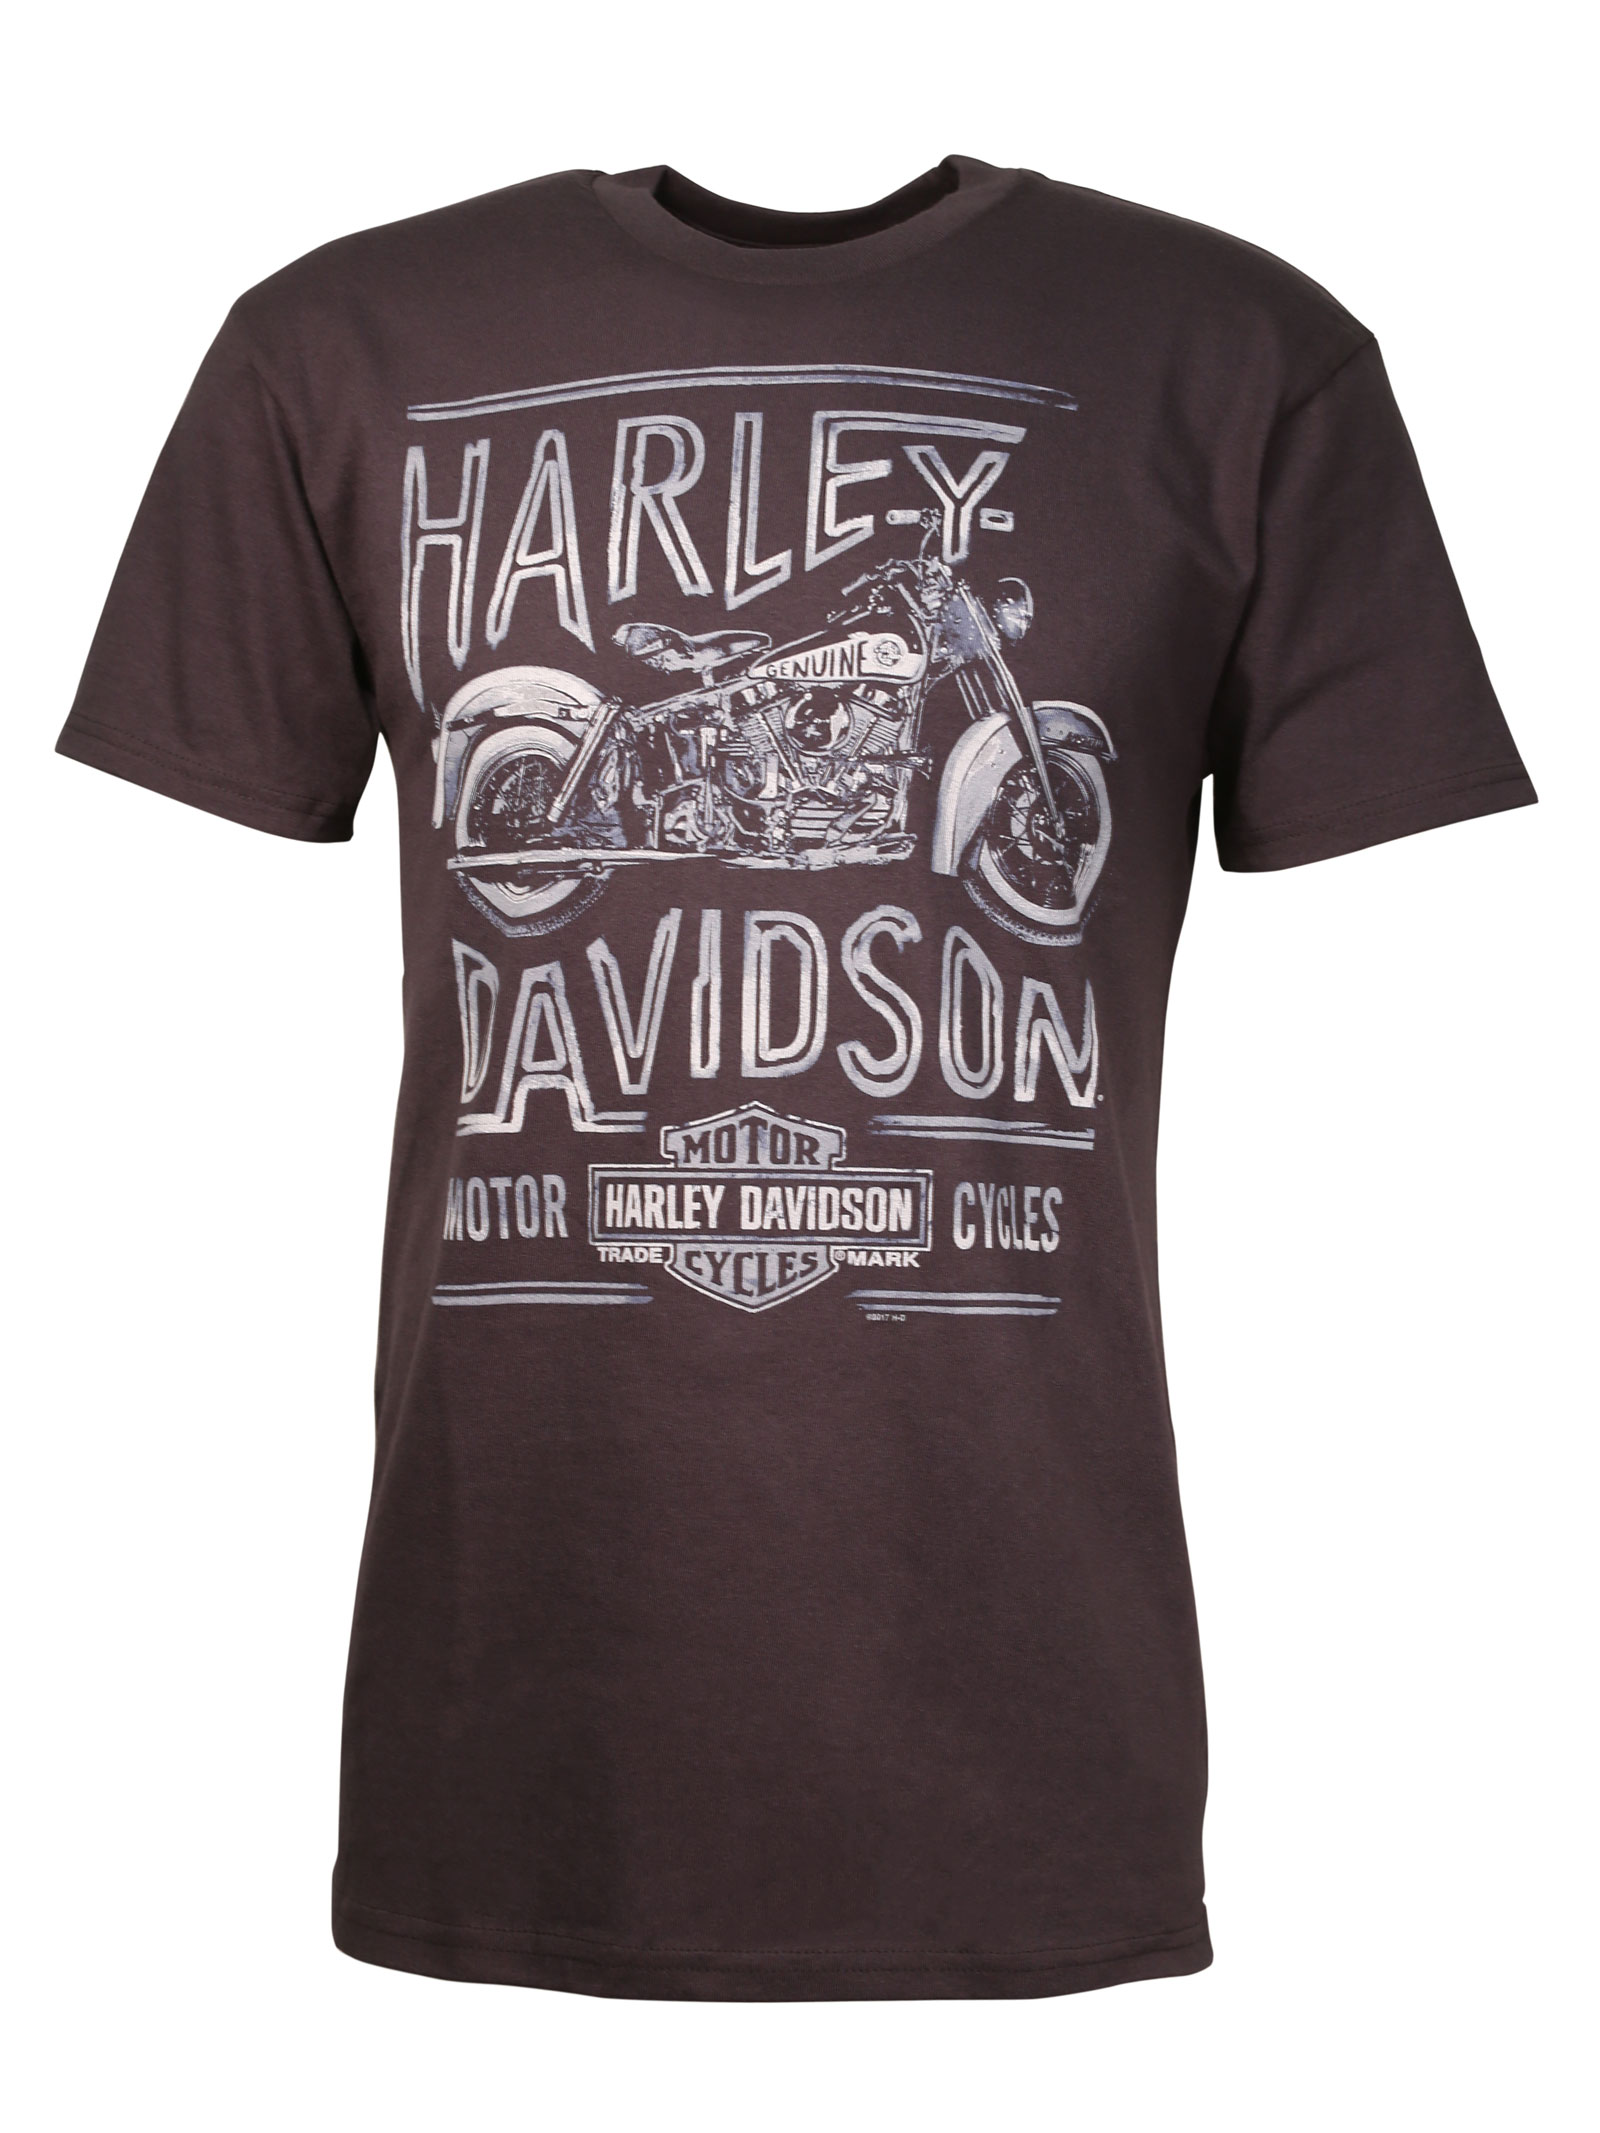 harley davidson t shirt endless smoke at thunderbike shop. Black Bedroom Furniture Sets. Home Design Ideas